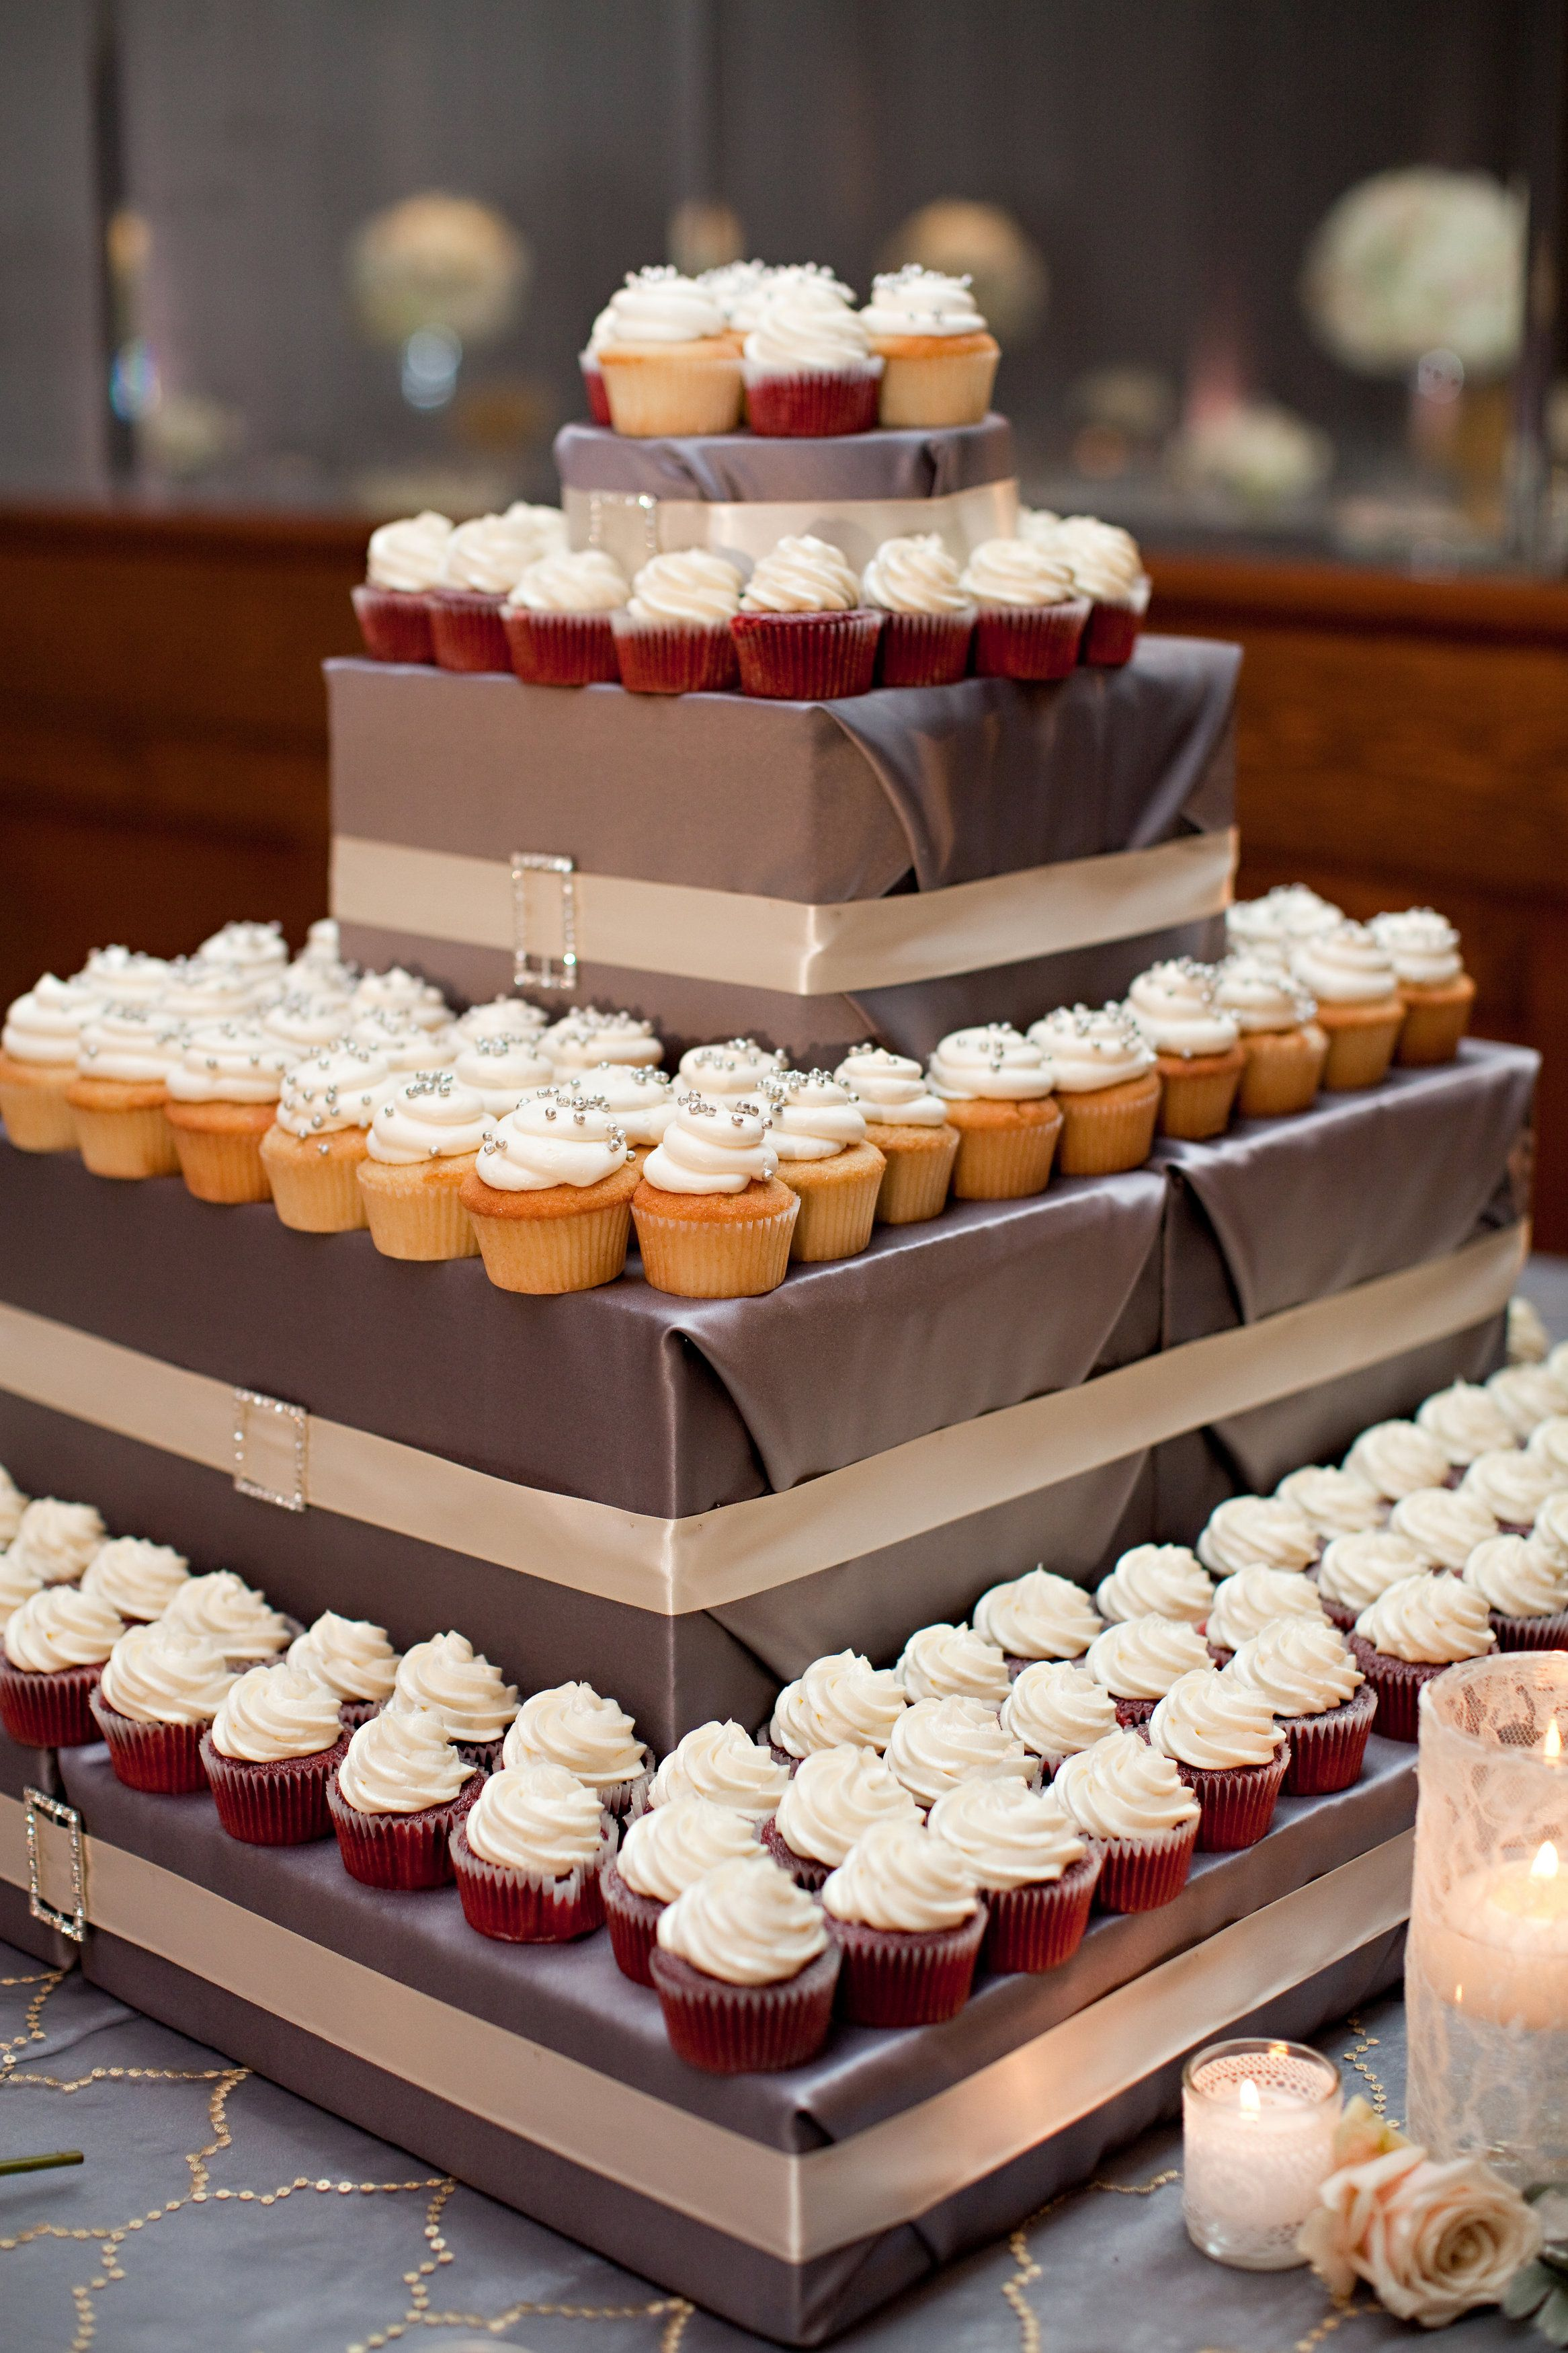 Diy Cupcake Tower With Red Velvet And Vanilla Mini Cupcakes